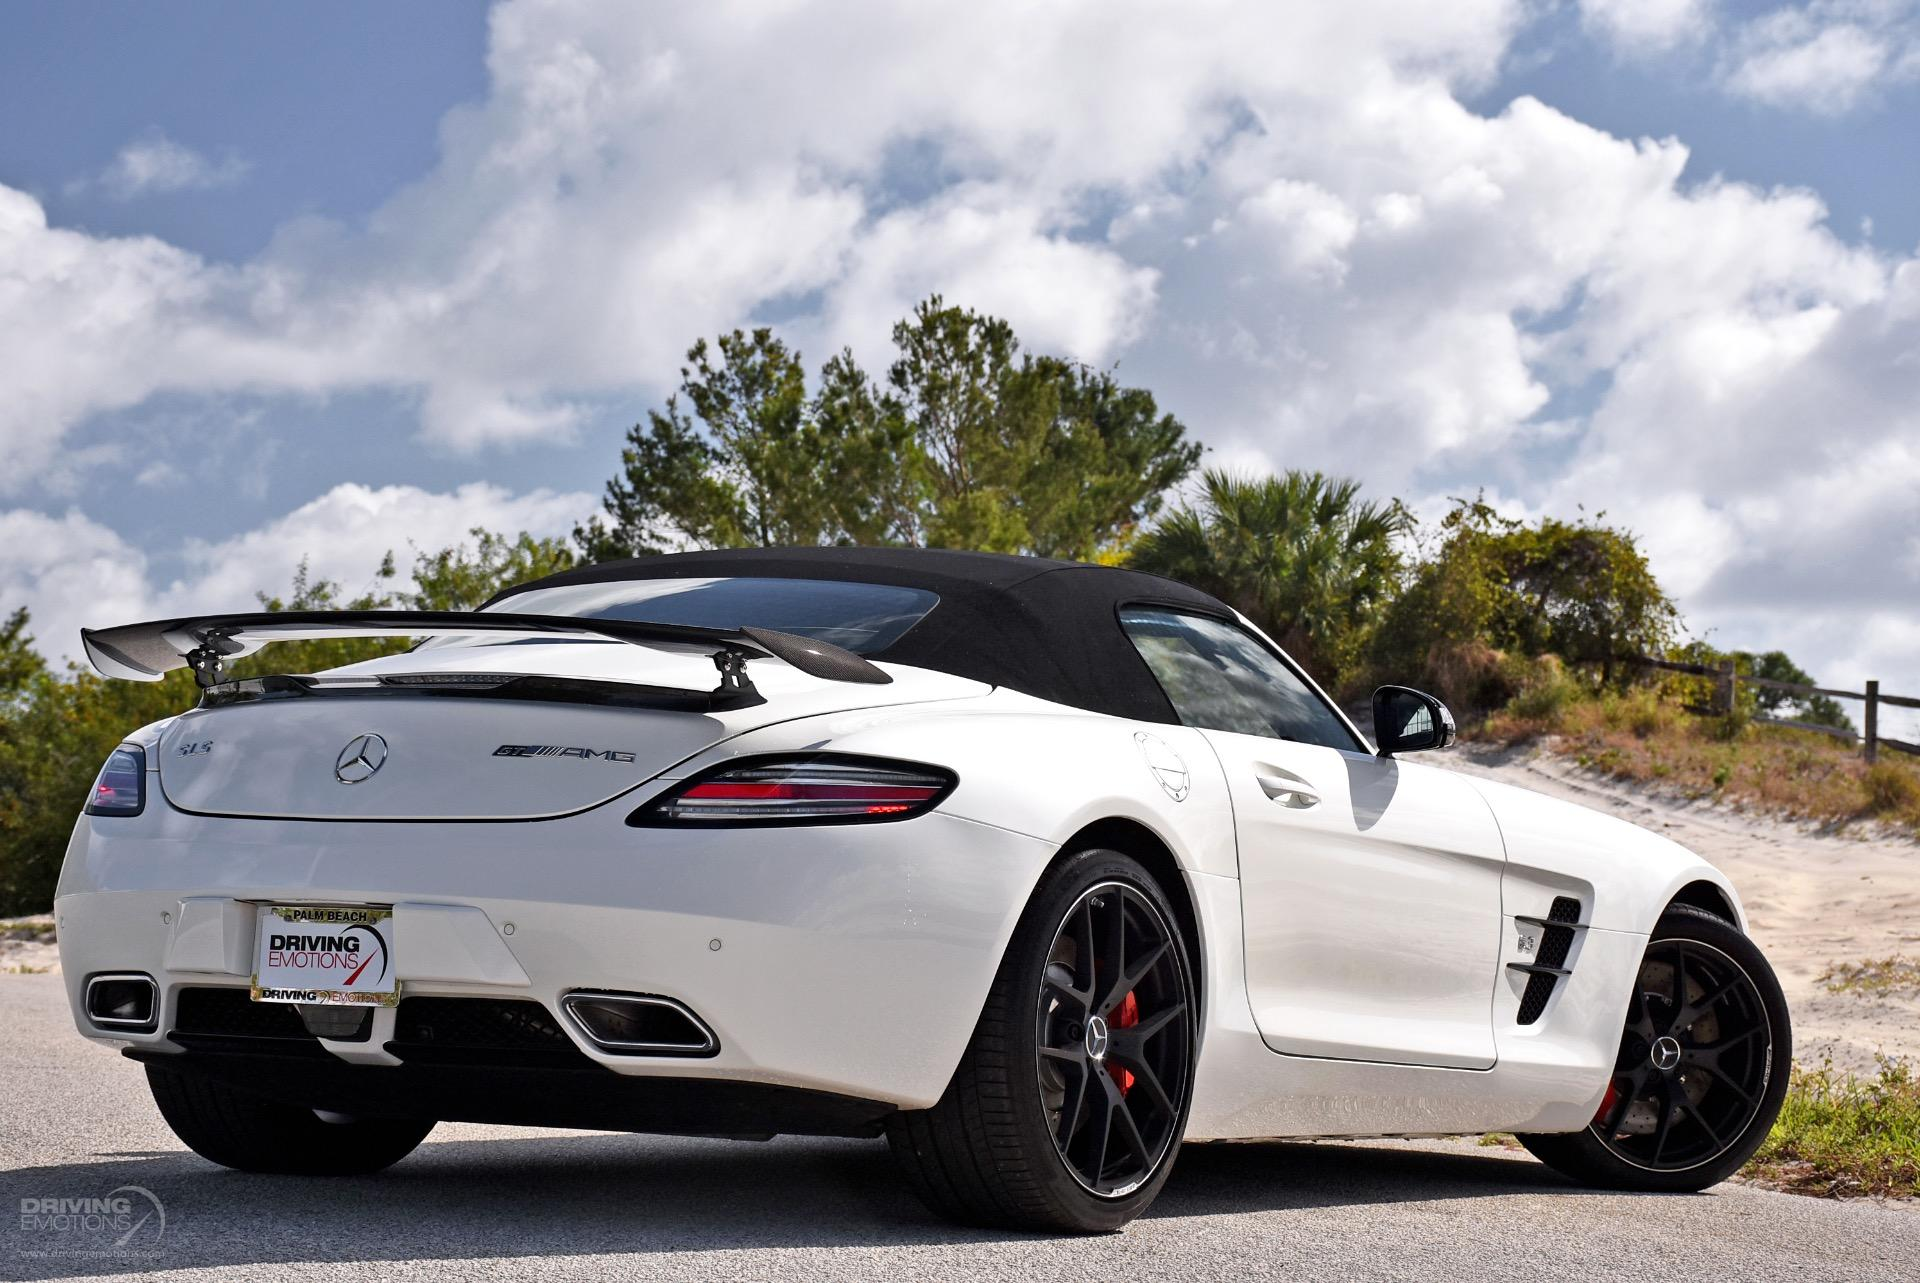 Porsche Approved Used >> 2015 Mercedes-Benz SLS AMG GT Roadster Final Edition GT Final Edition Stock # 5924 for sale near ...